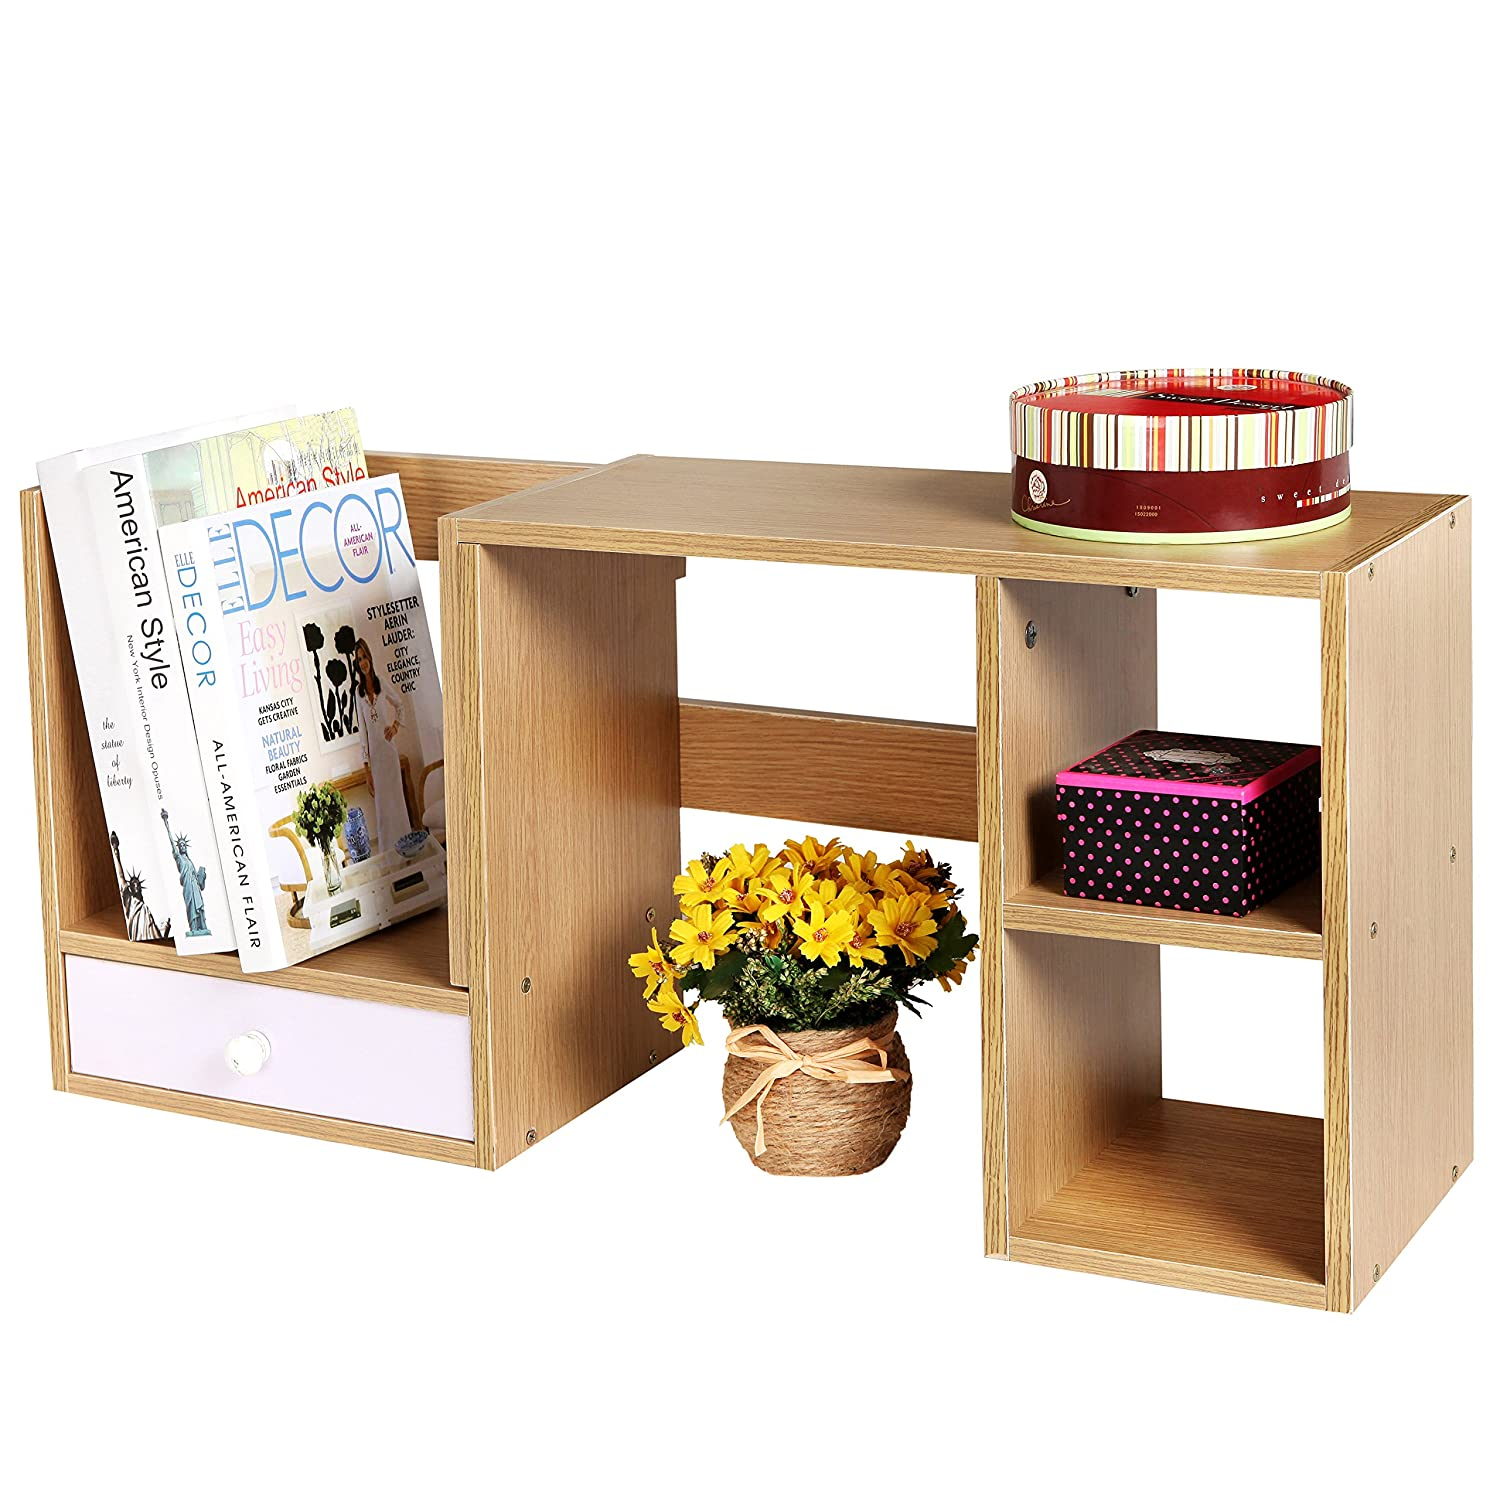 ch cubi desktop natural csw bookcase storage organizers cherry stackable shelf wood organizer levenger desk